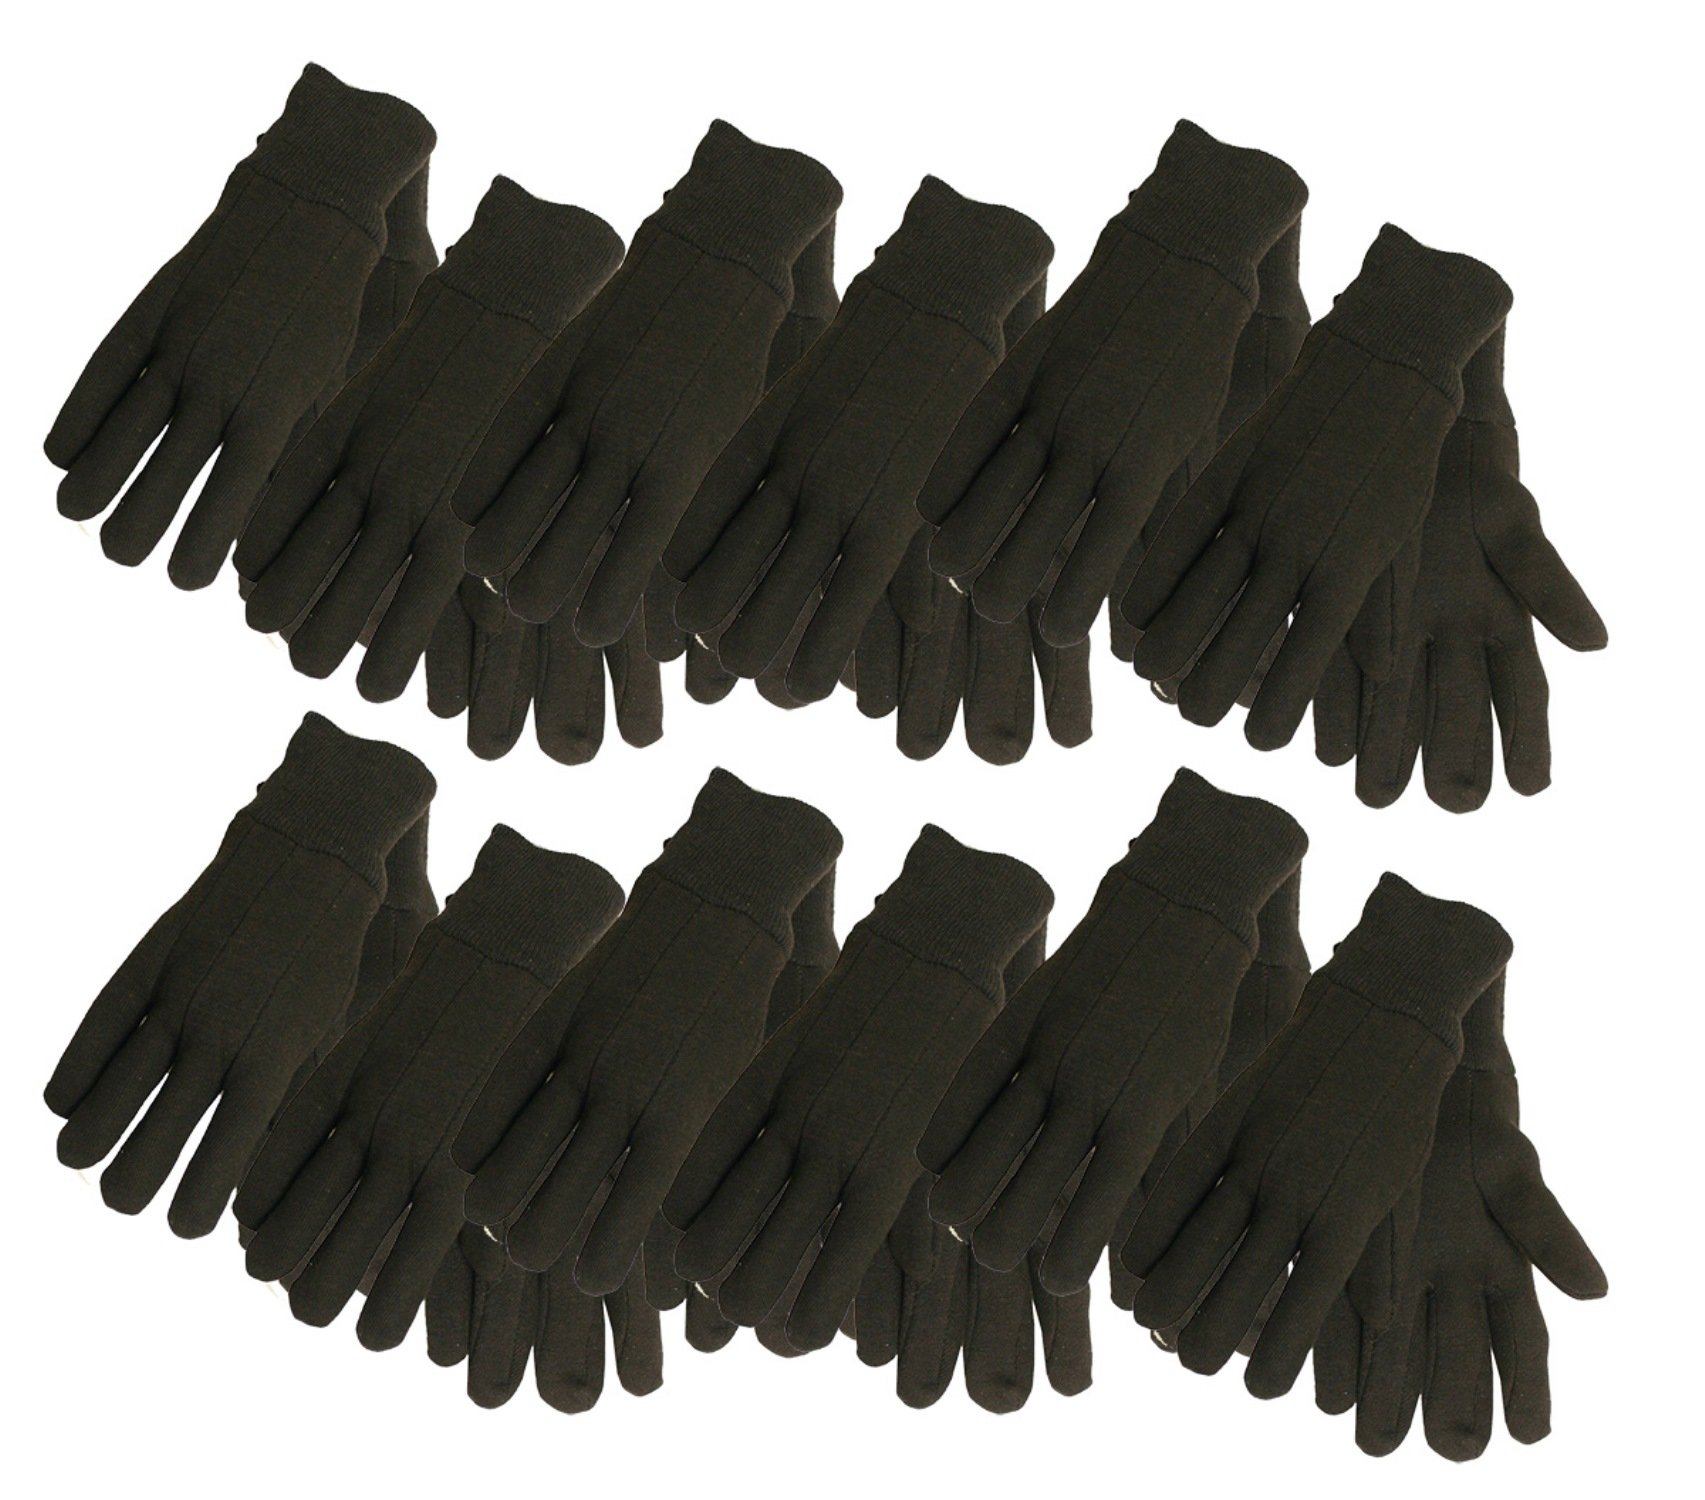 Cotton Jersey Work Gloves, 7792P12, Size: Large, Brown, 12-Pack